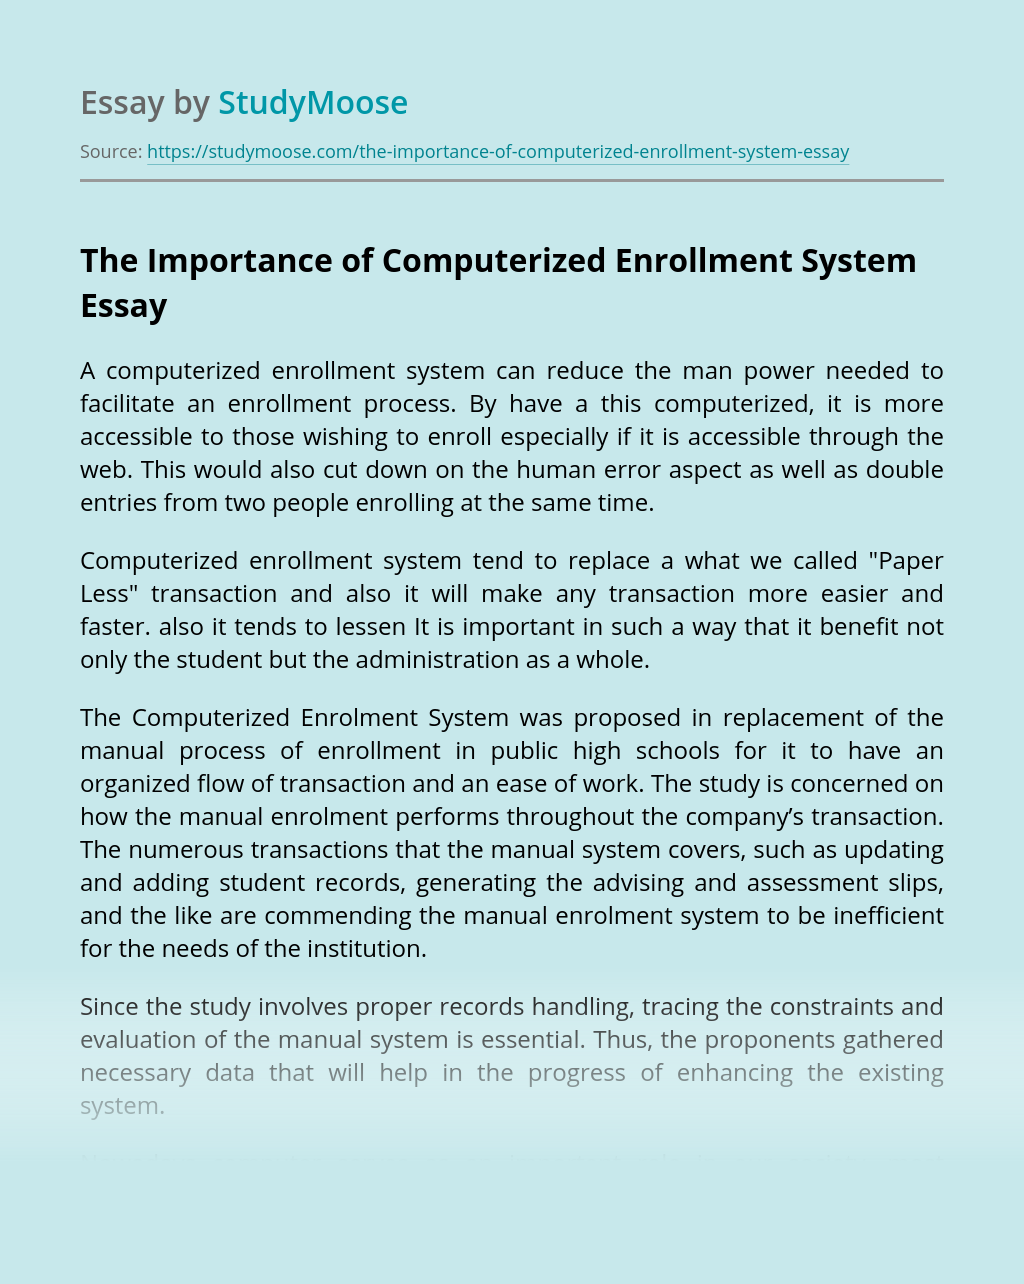 The Importance of Computerized Enrollment System